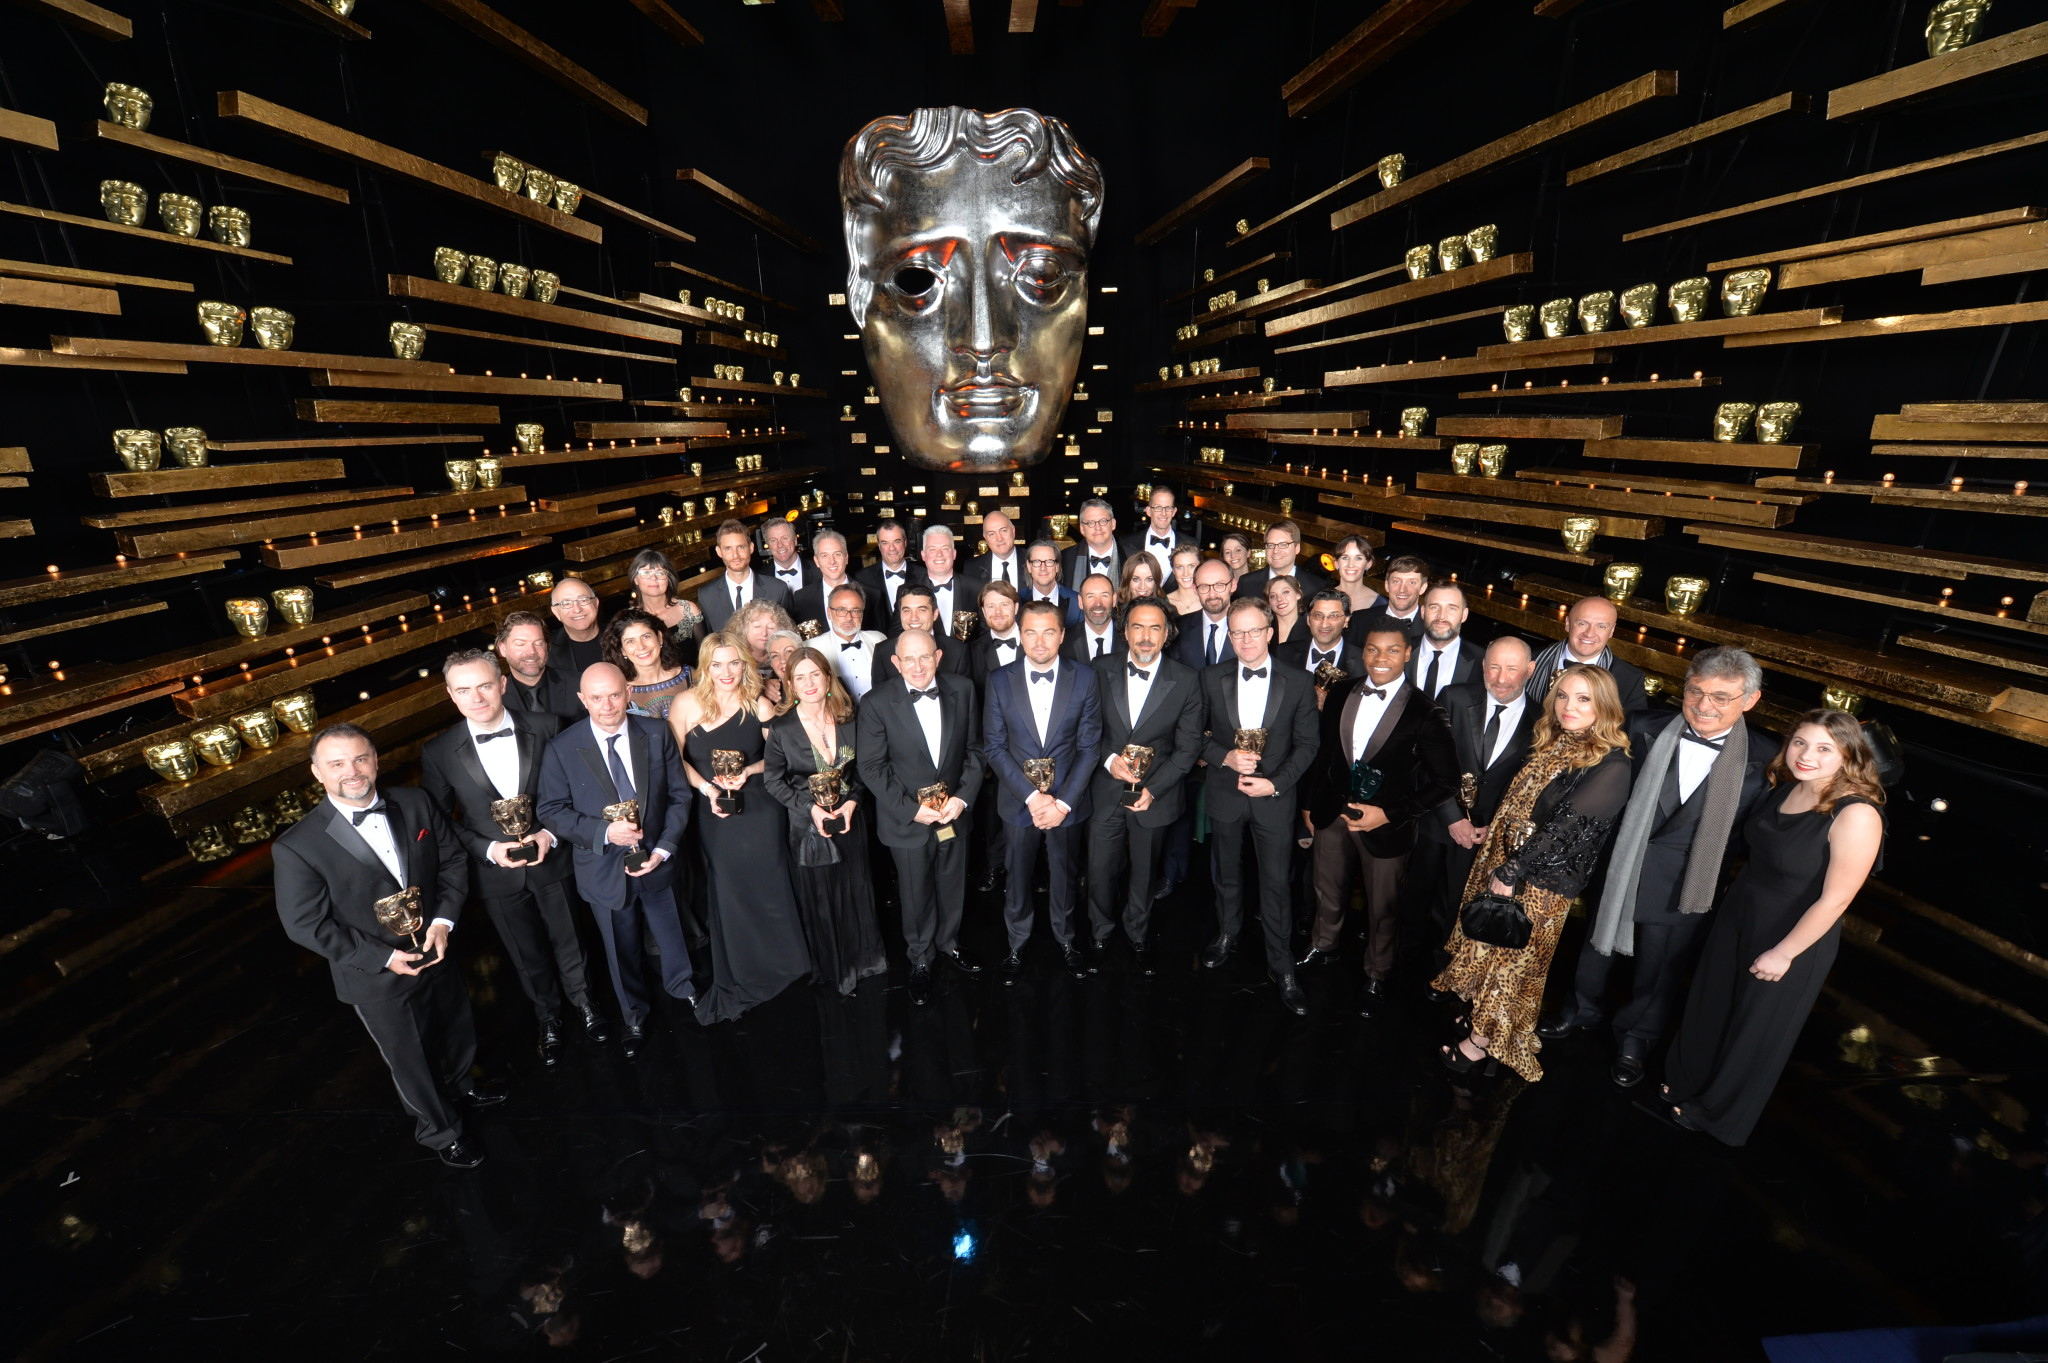 Event: EE British Academy Film AwardsDate: Sun 14 February 2016Venue: Royal Opera HouseHost: Stephen Fry-Area: WINNERS GROUP SHOT